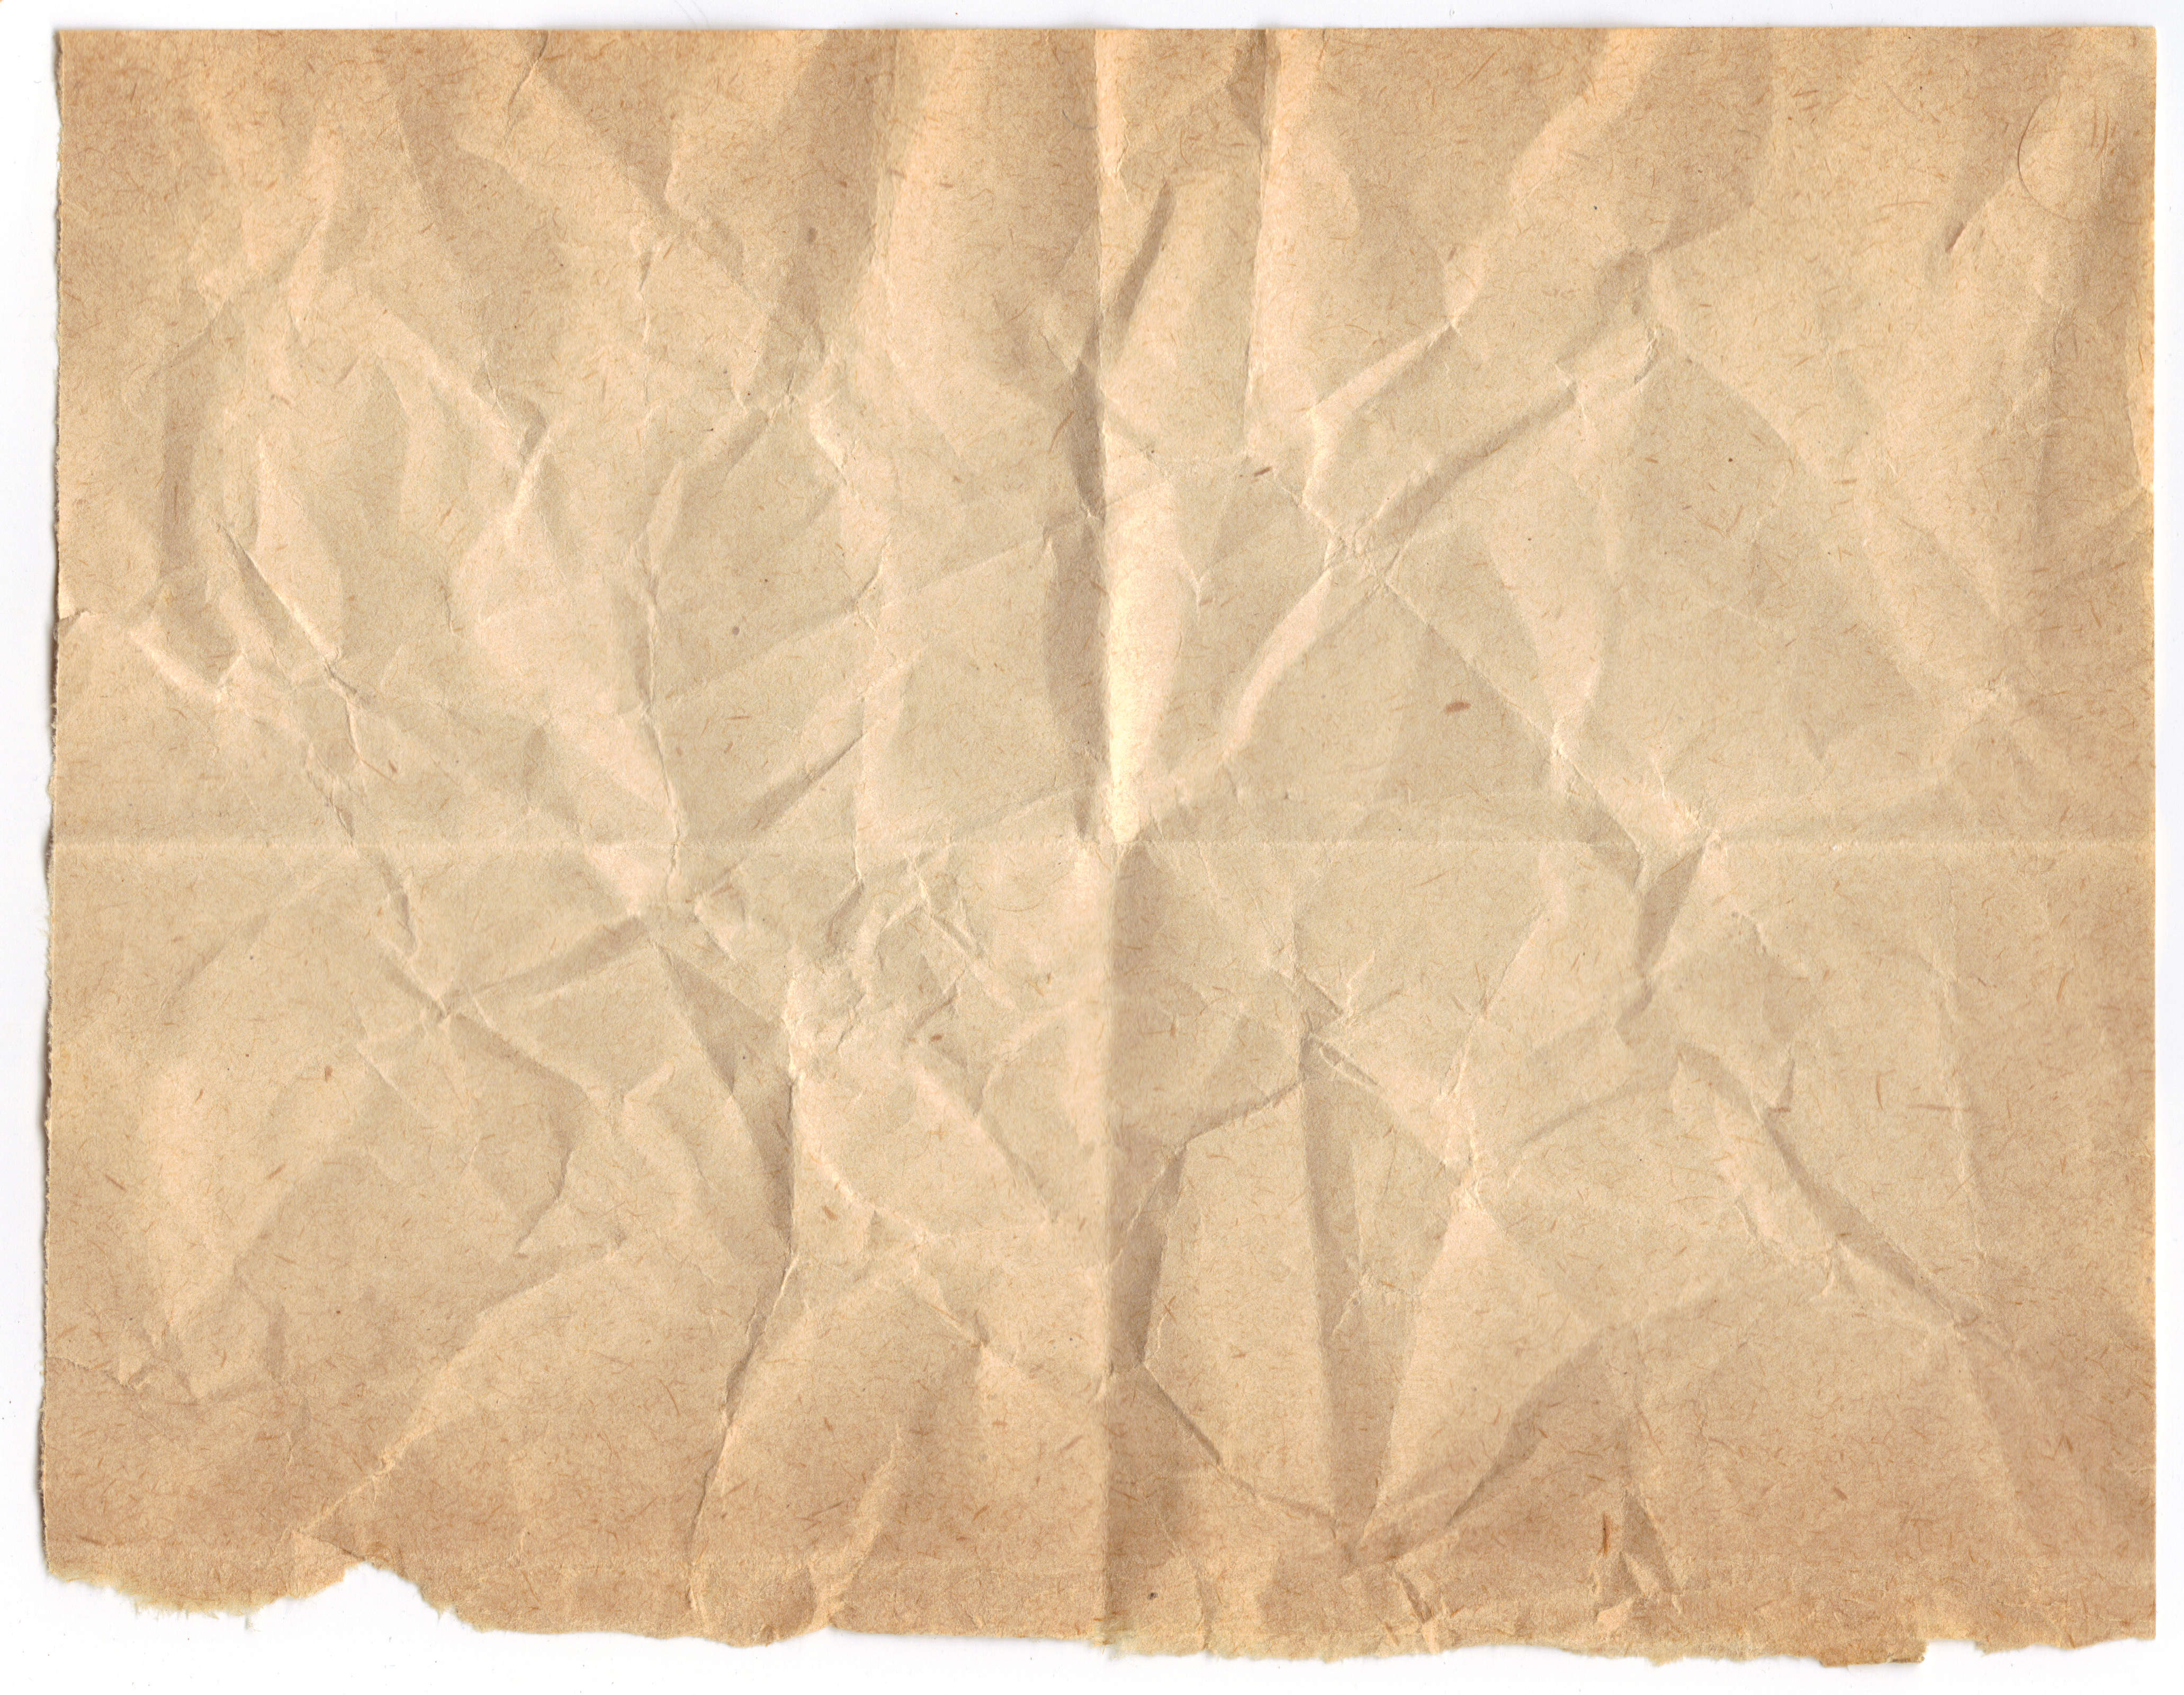 5 crumpled and folded old paper textures (jpg) | onlygfx